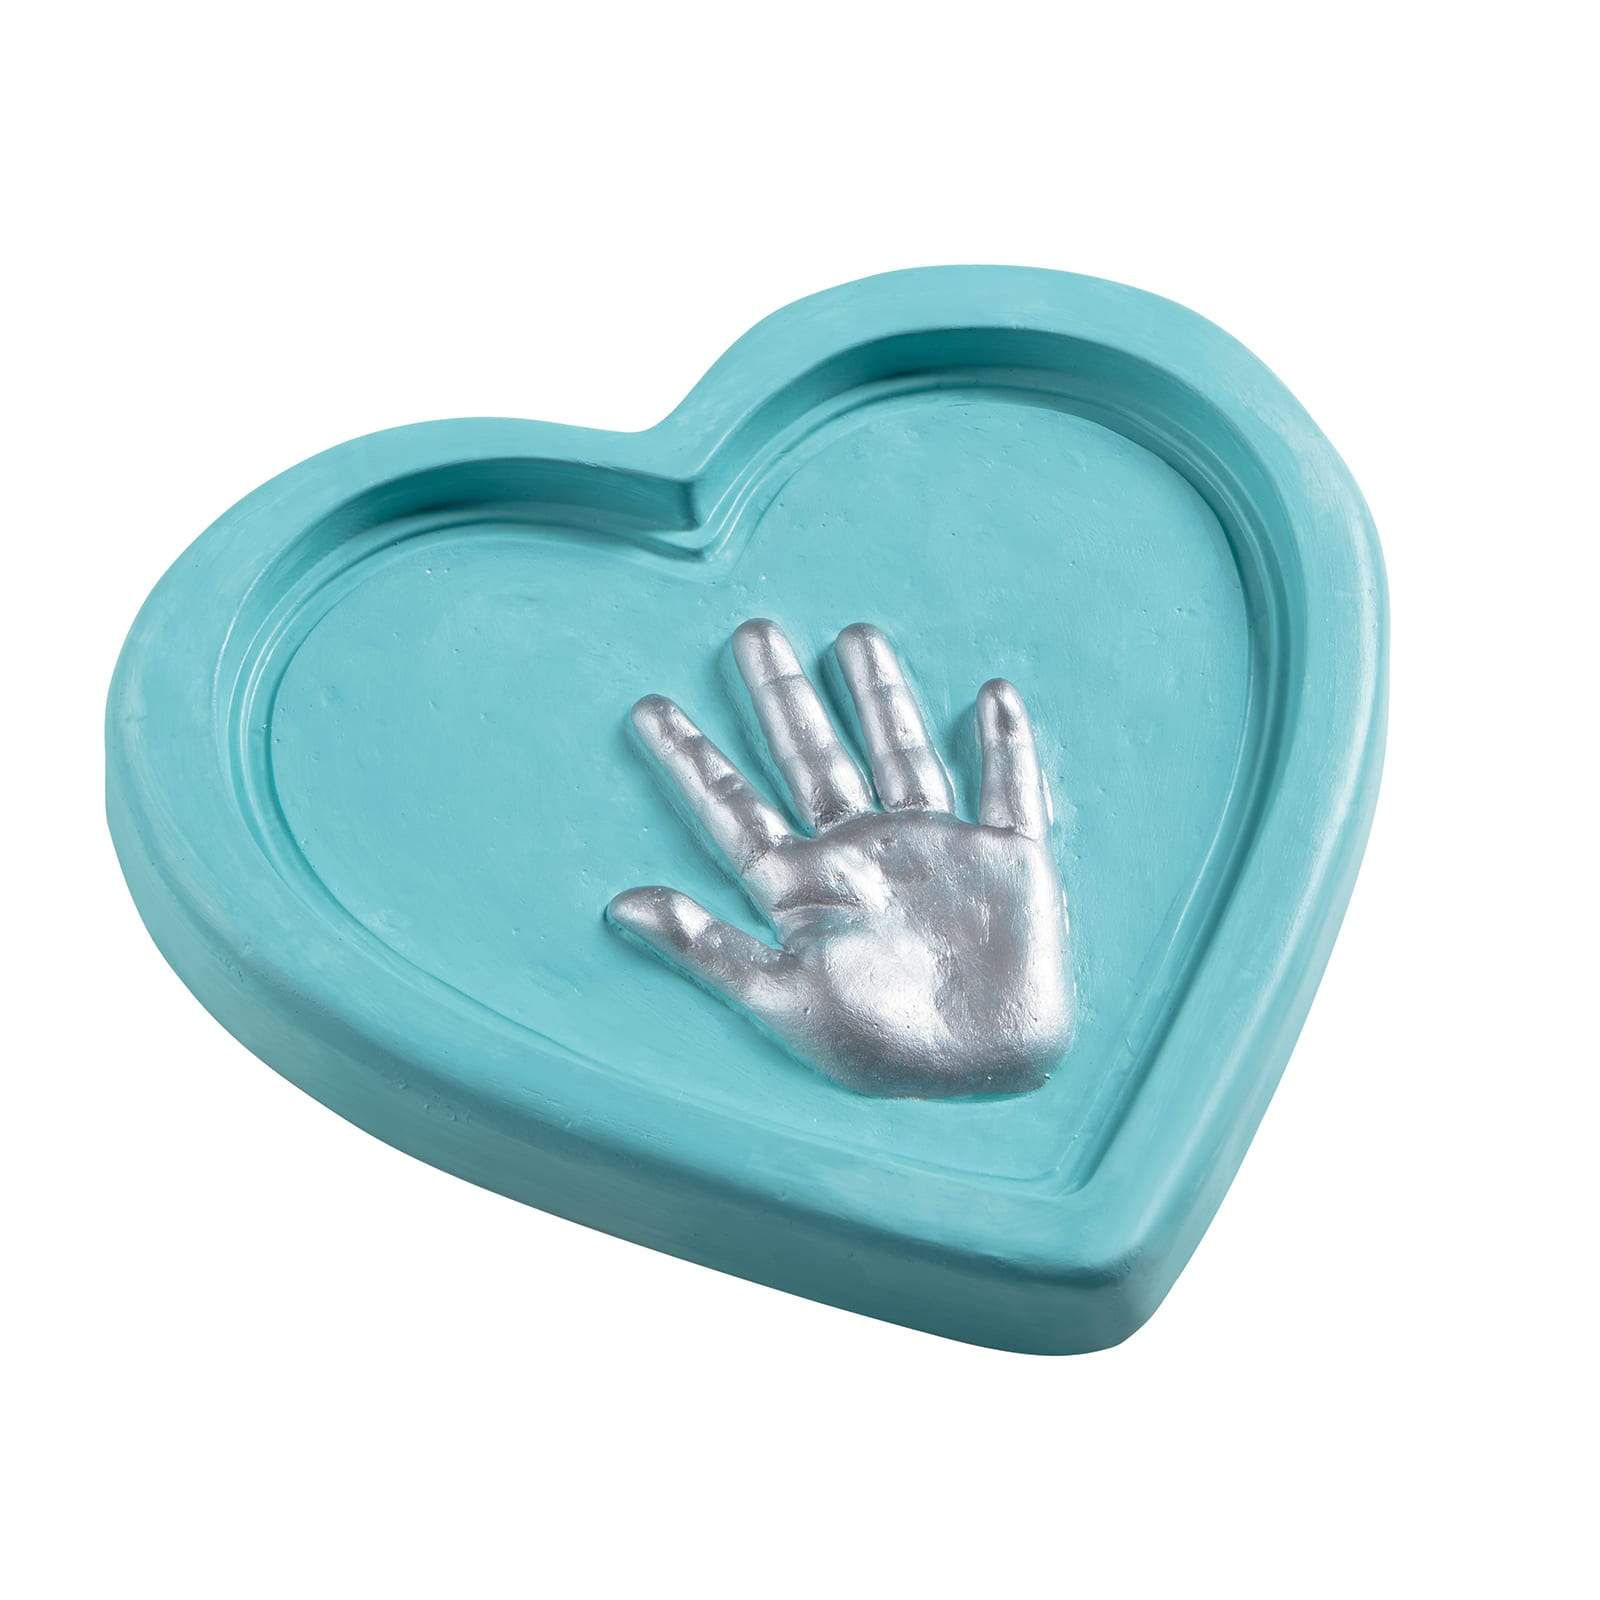 NEW ARTMINDS PLASTIC TRAY SOAP MOLD HEARTS AND LOVE DESIGN